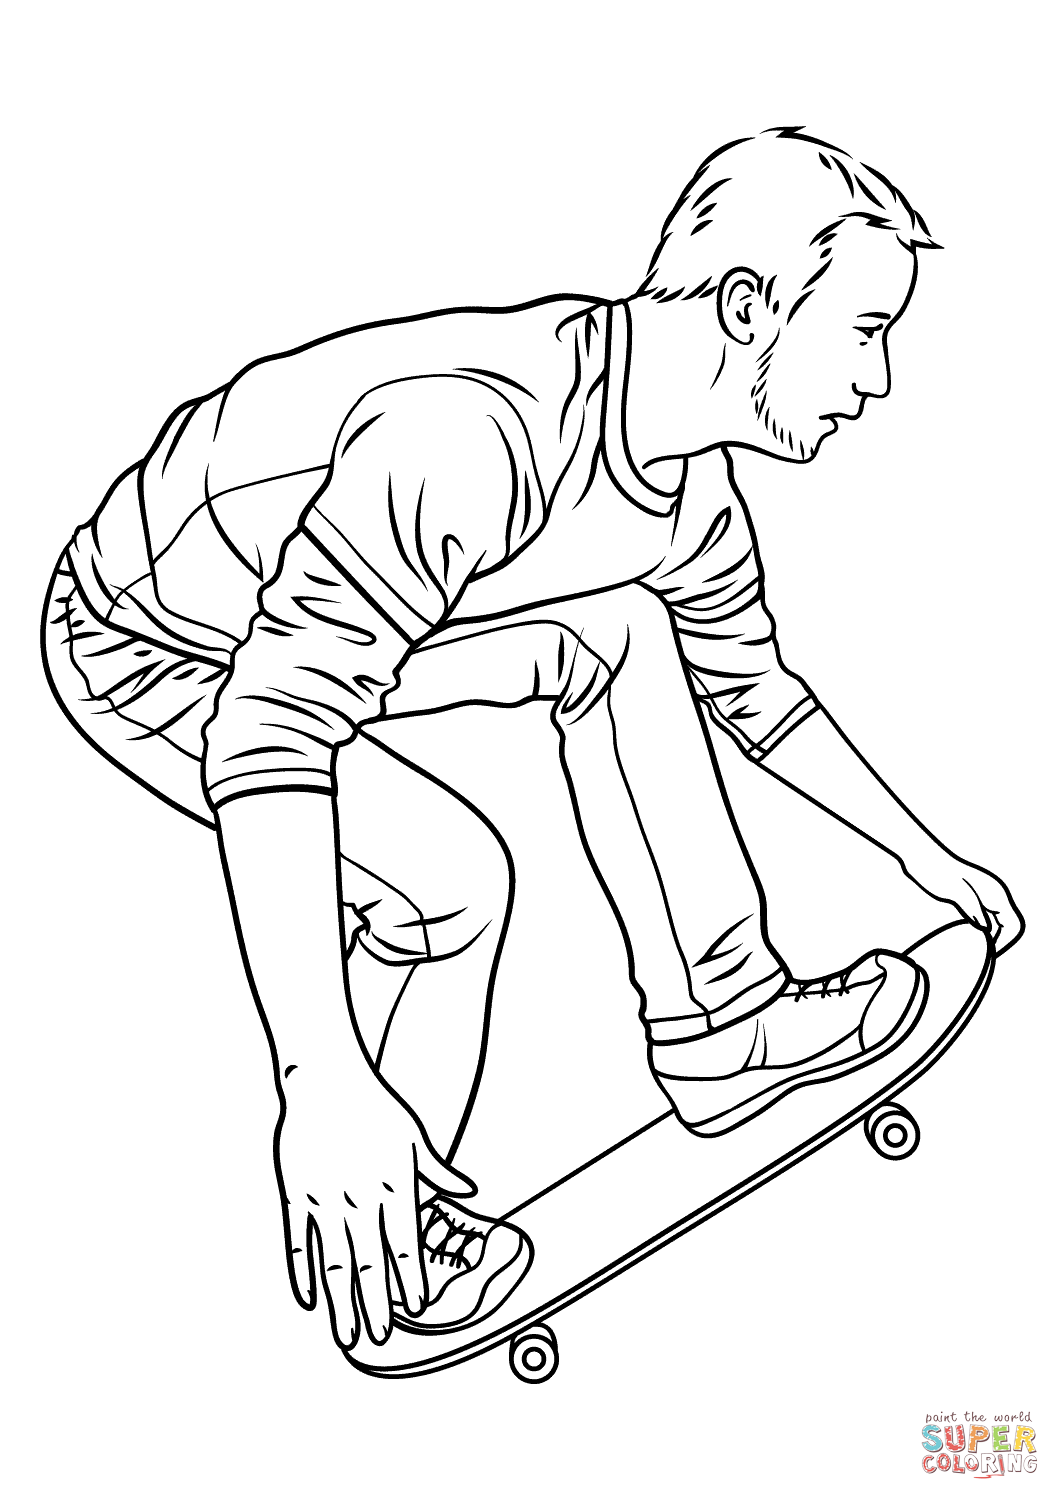 henry hawk coloring pages - photo#45